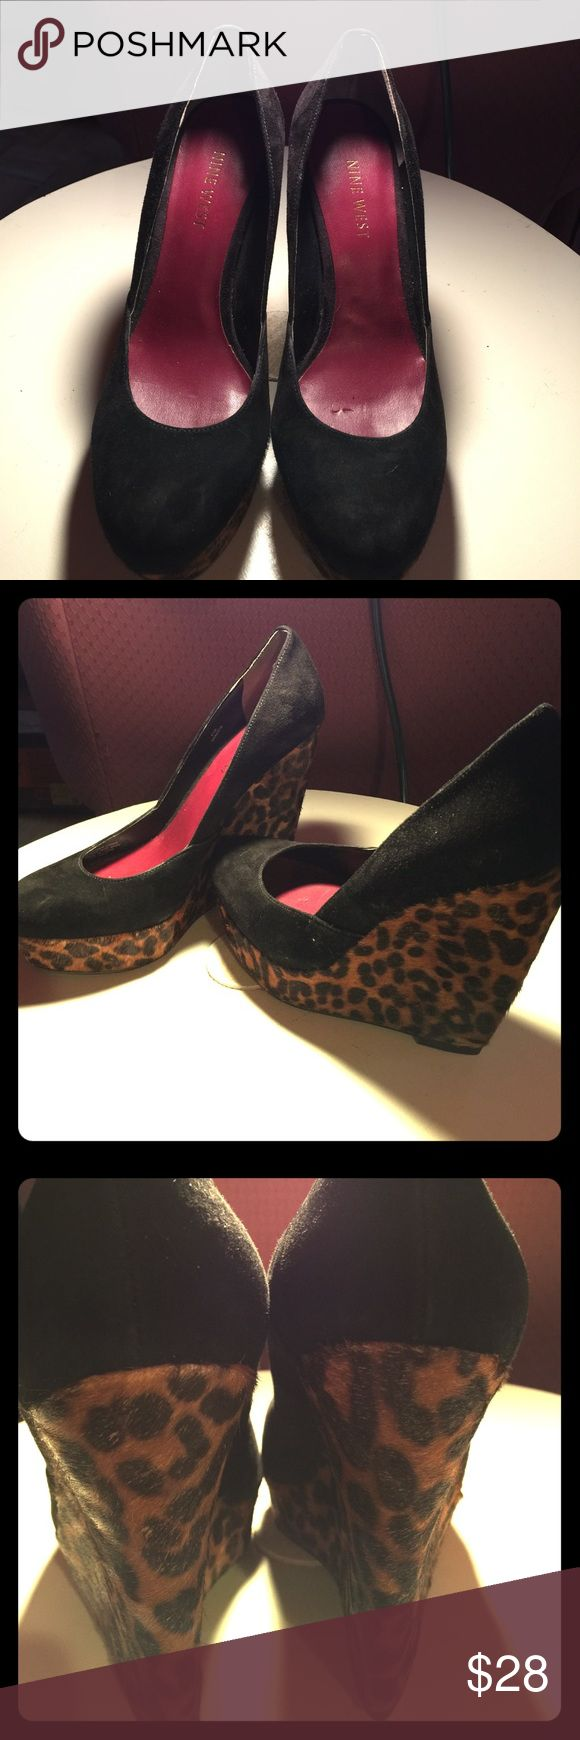 Women's size 61/2M NINE WEST black/leopard wedges Women's size 6 1/2 M black with leopard wedge heeled NINE WEST cute shoes. These shoes are quite unique in color and style. These gorgeous shoes would spice up an outfit. Any questions please feel free to contact me. Nine West Shoes Wedges